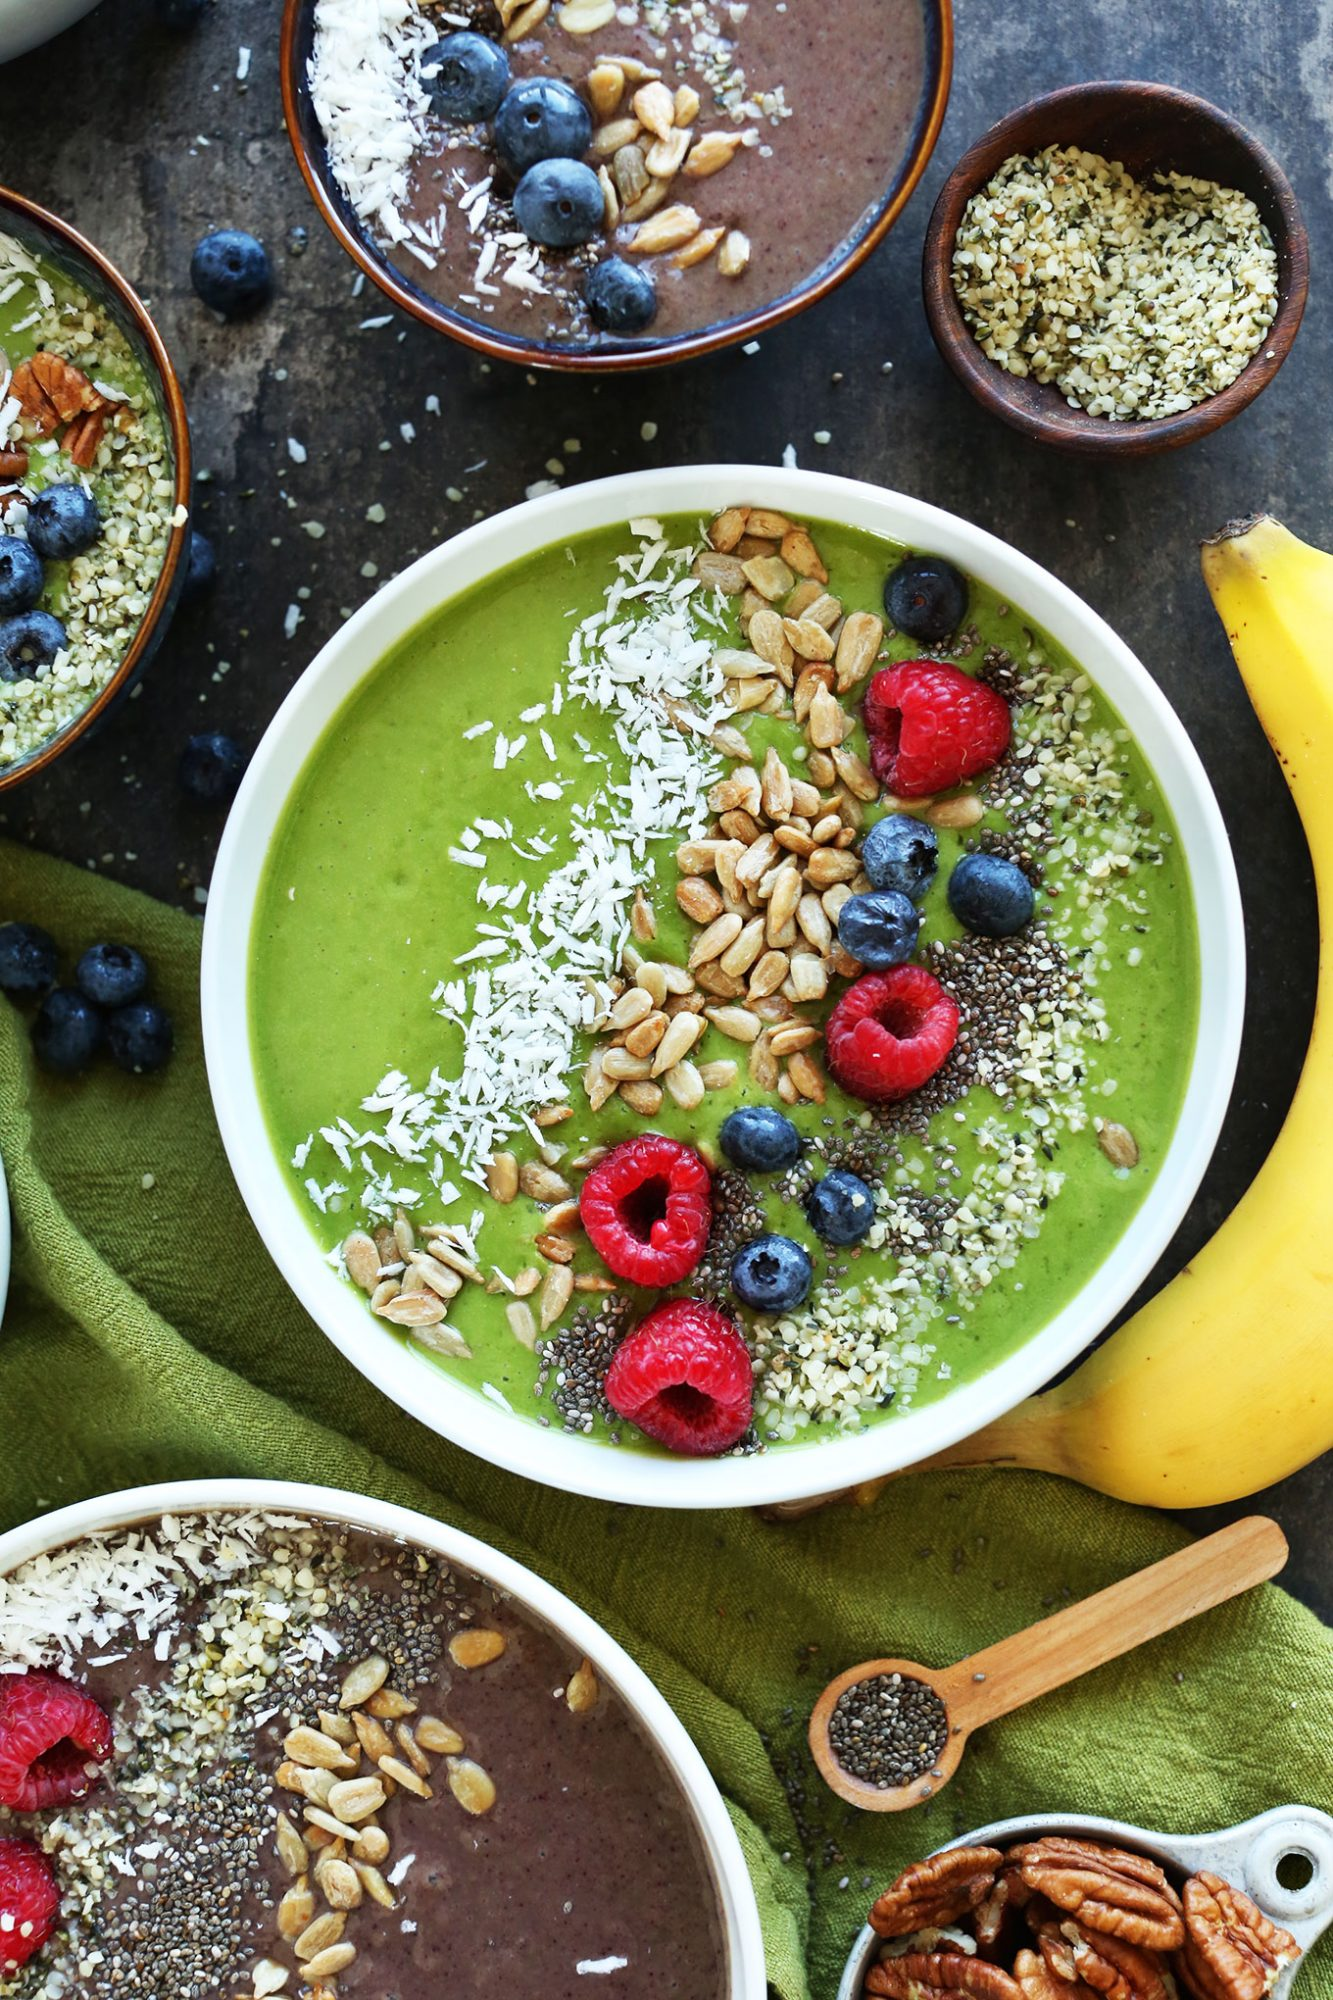 vegan-breakfast-green-smoothie-bowl